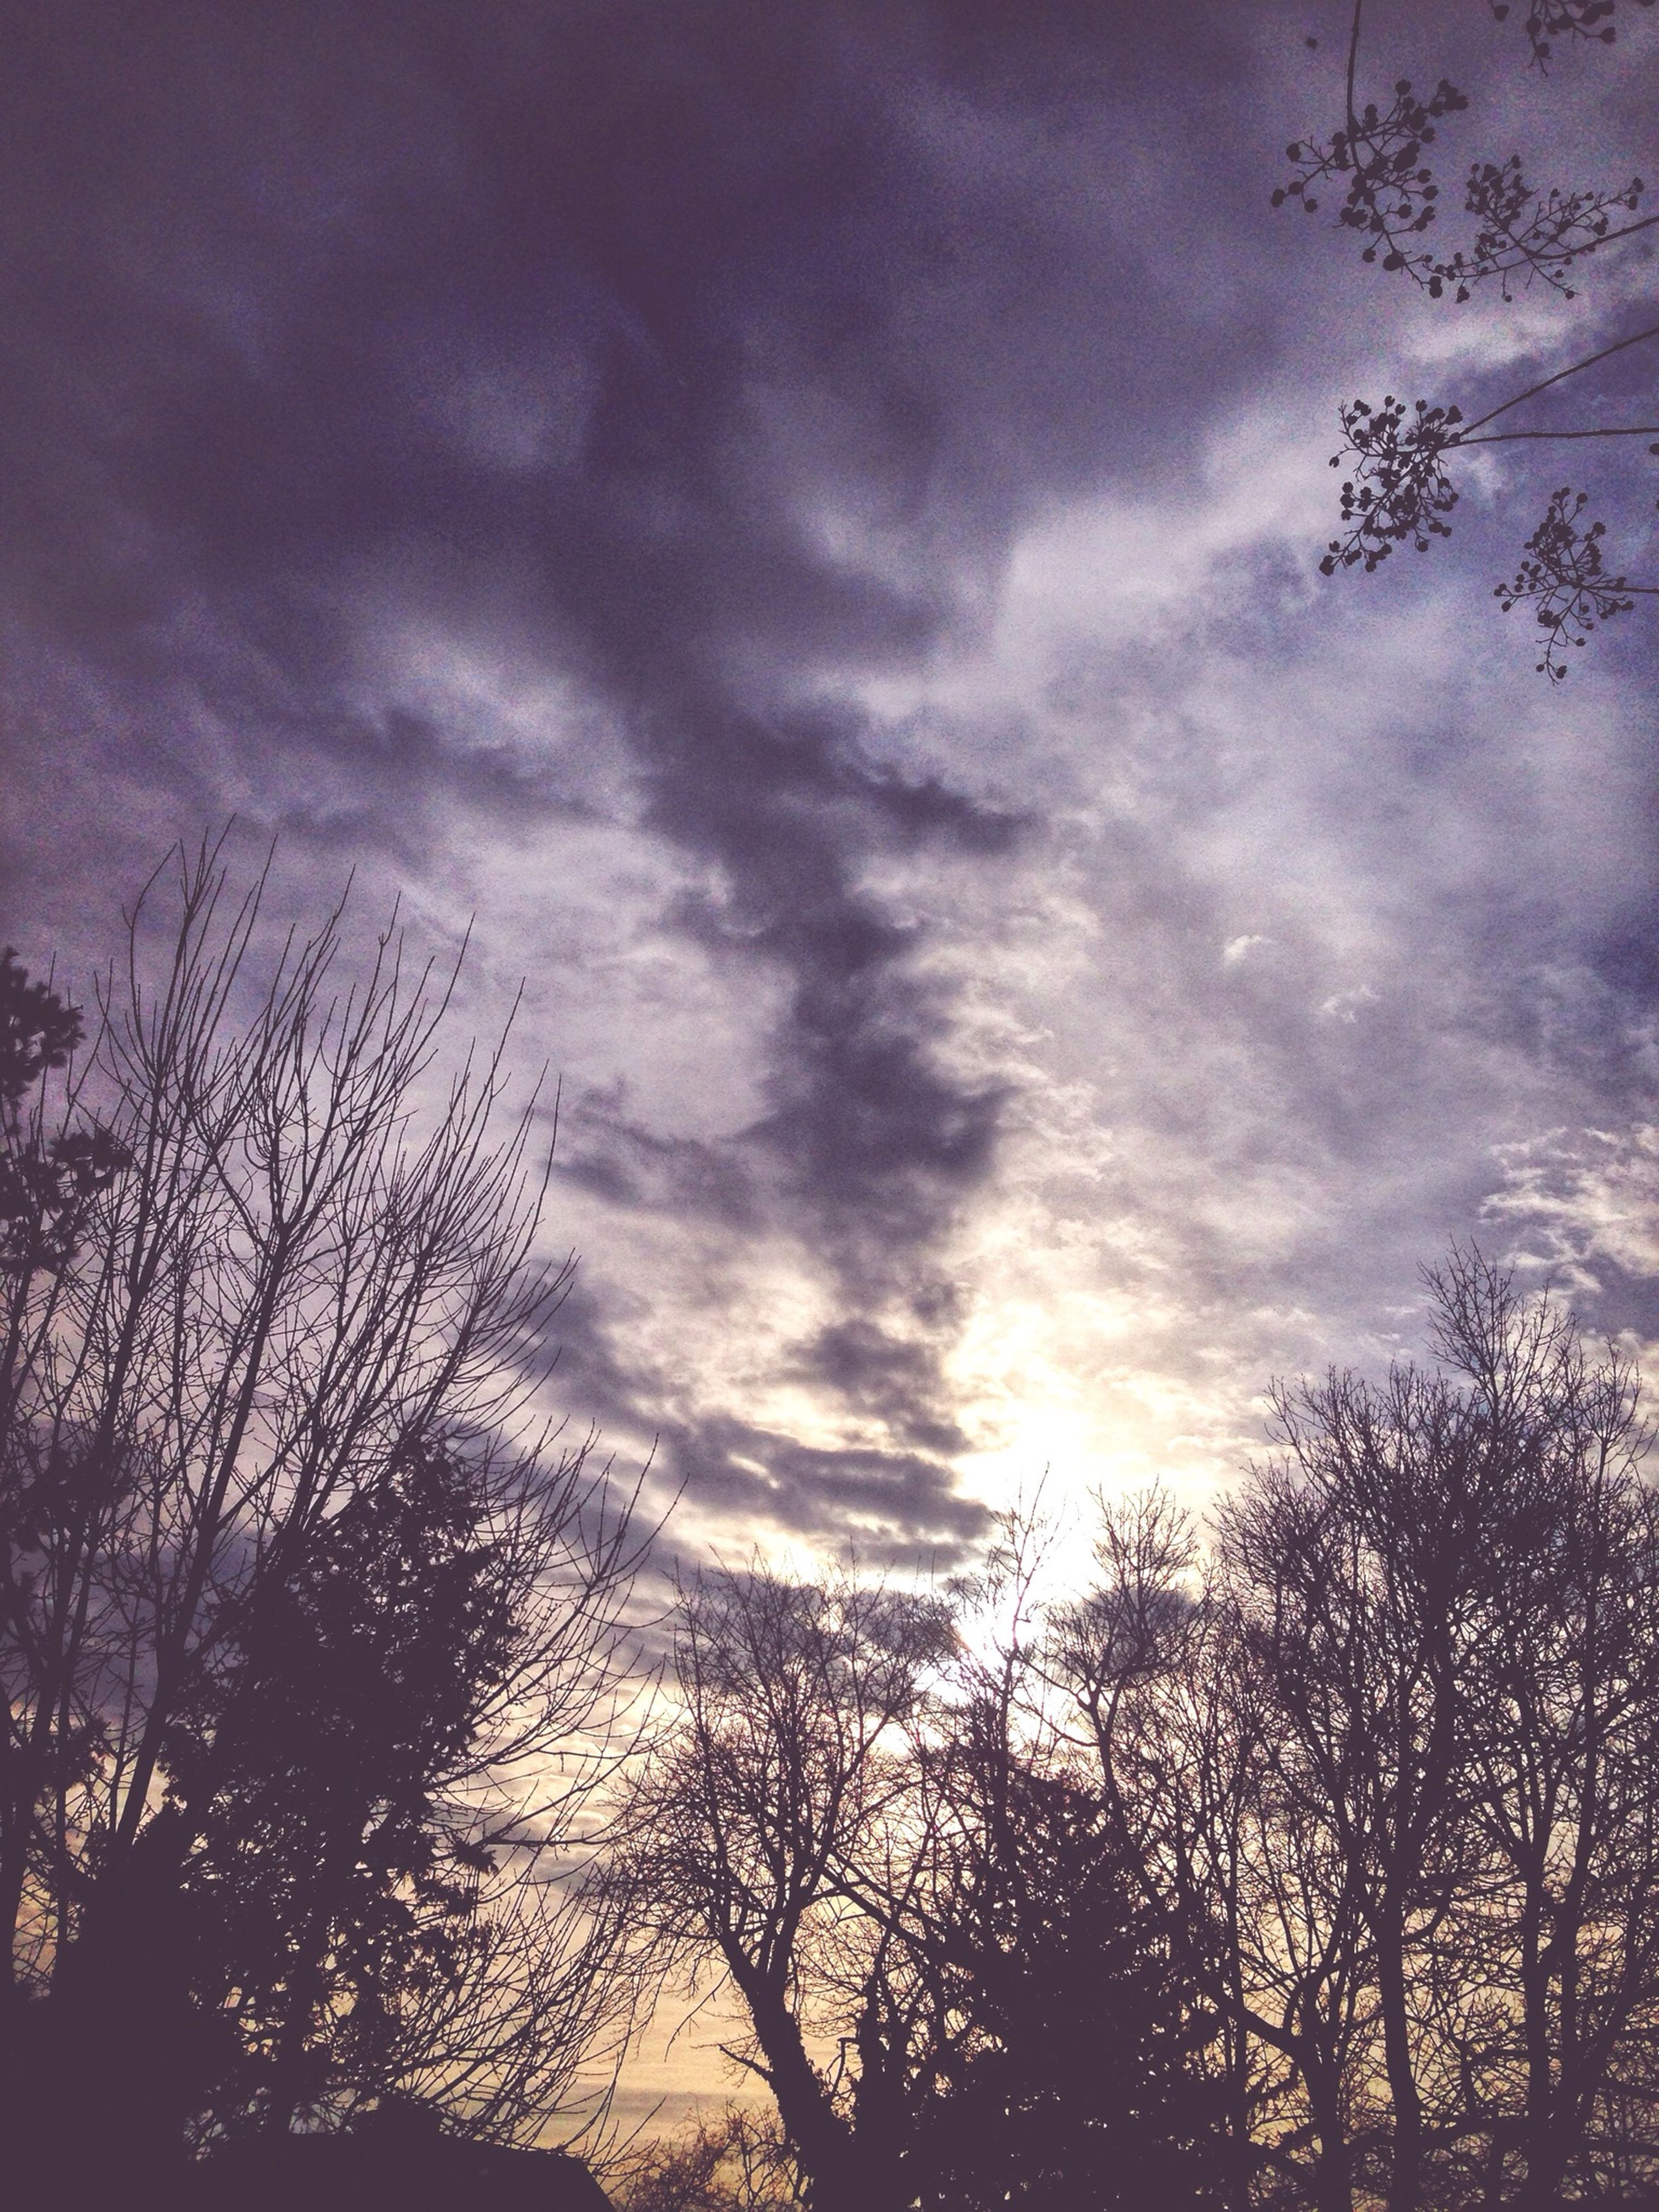 tree, silhouette, sky, low angle view, bare tree, cloud - sky, branch, tranquility, beauty in nature, cloudy, scenics, nature, tranquil scene, sunset, cloud, growth, dusk, outdoors, no people, idyllic